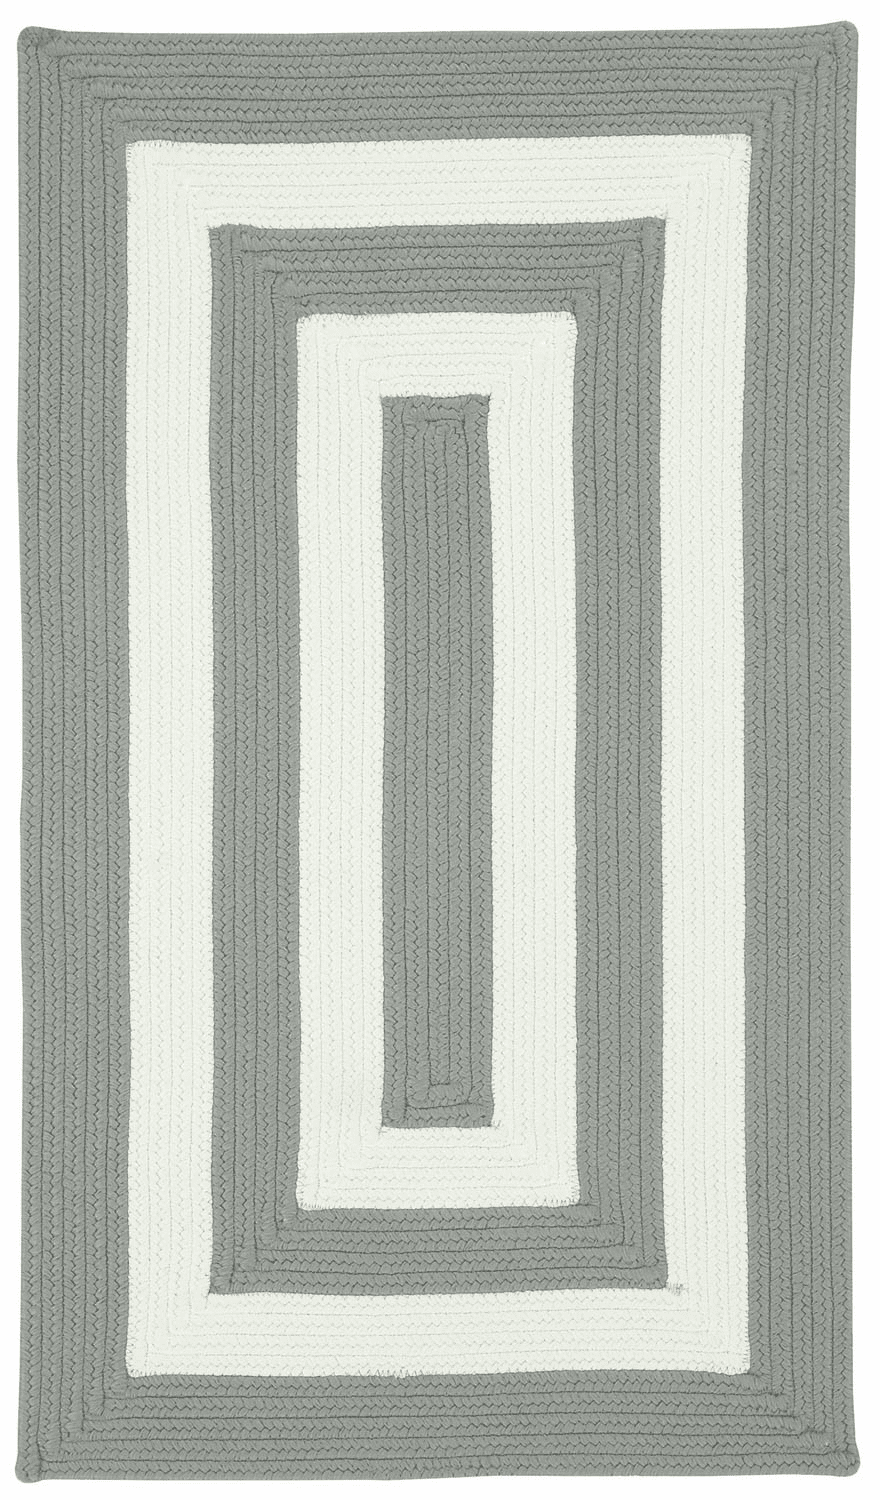 Hand-Braided Beige Rug